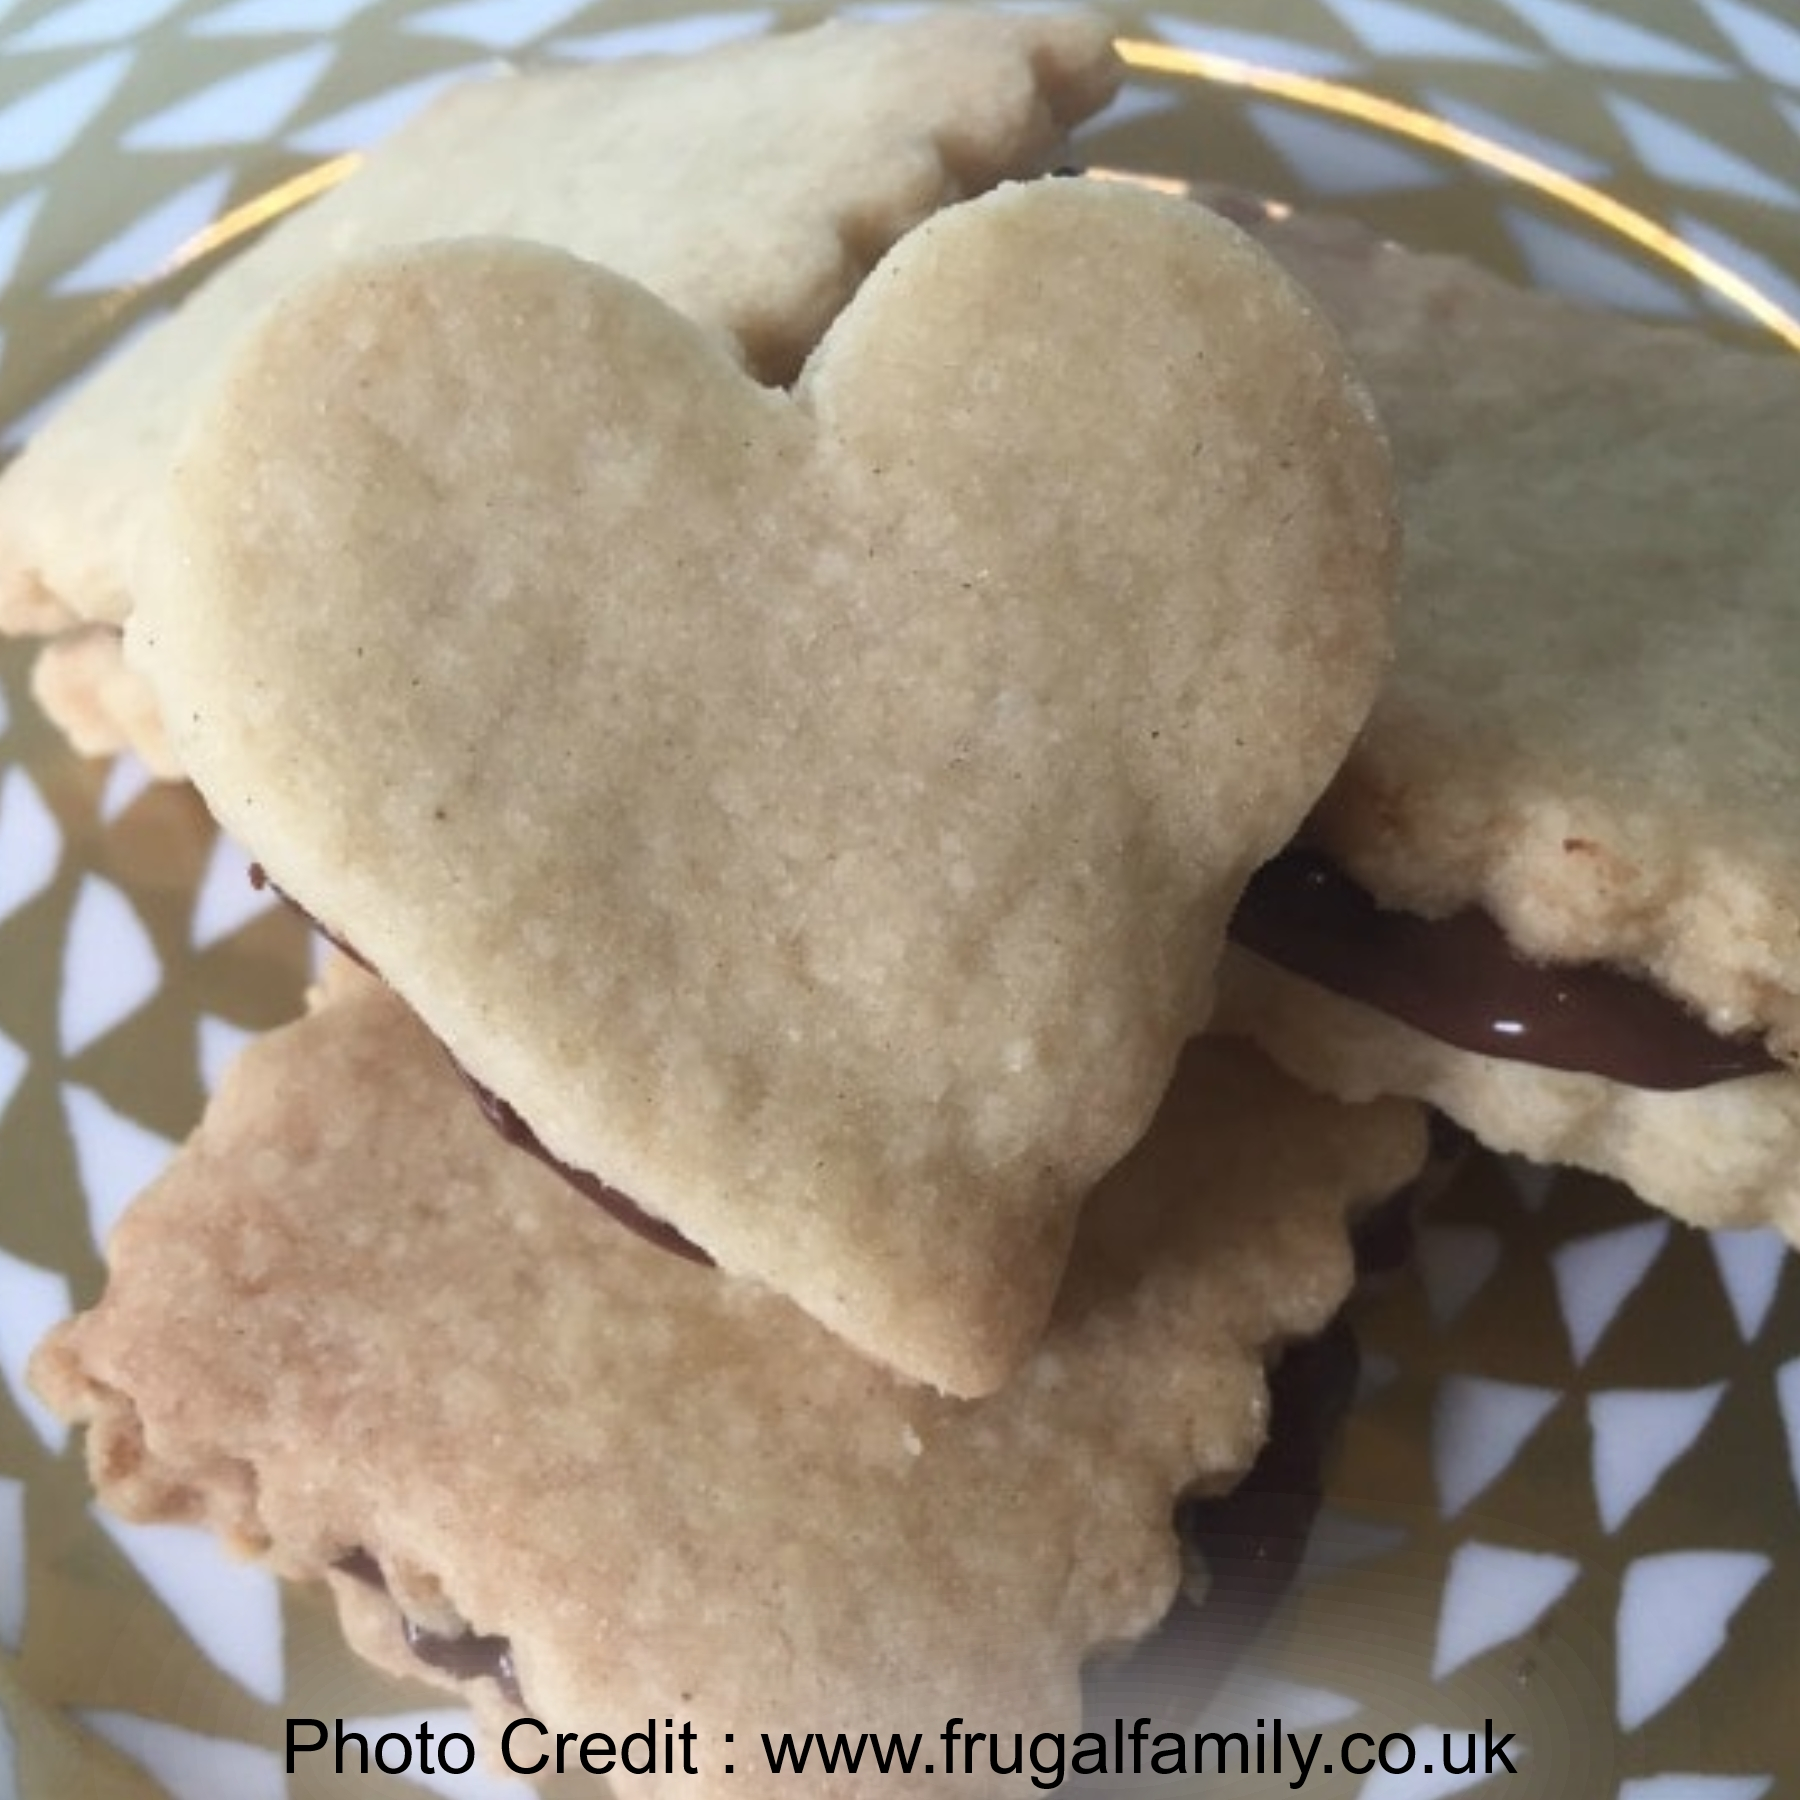 Easy Three Ingredient Biscuits from Frugal Family